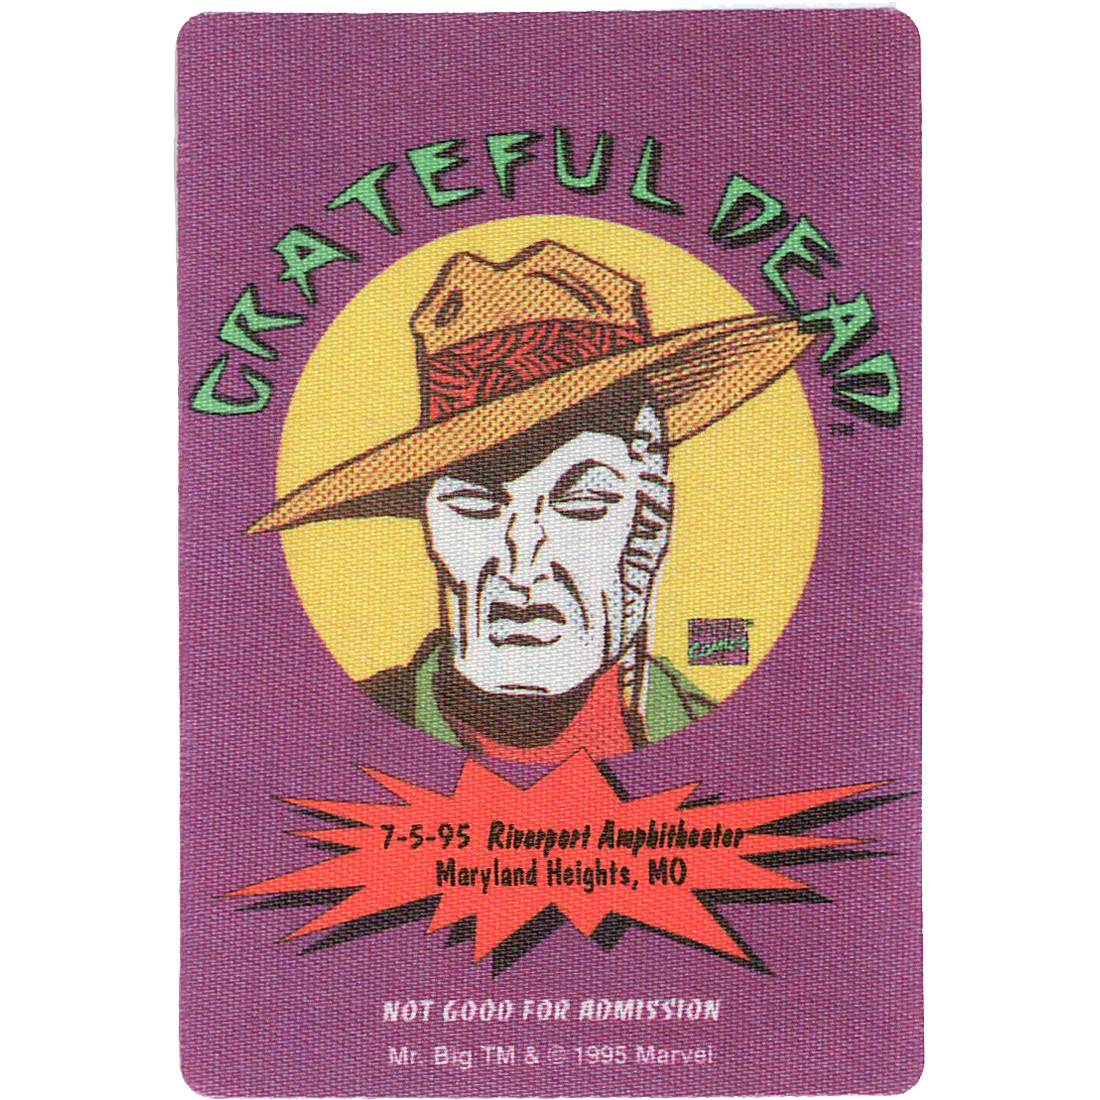 Grateful Dead 1995 07-05 Backstage Pass